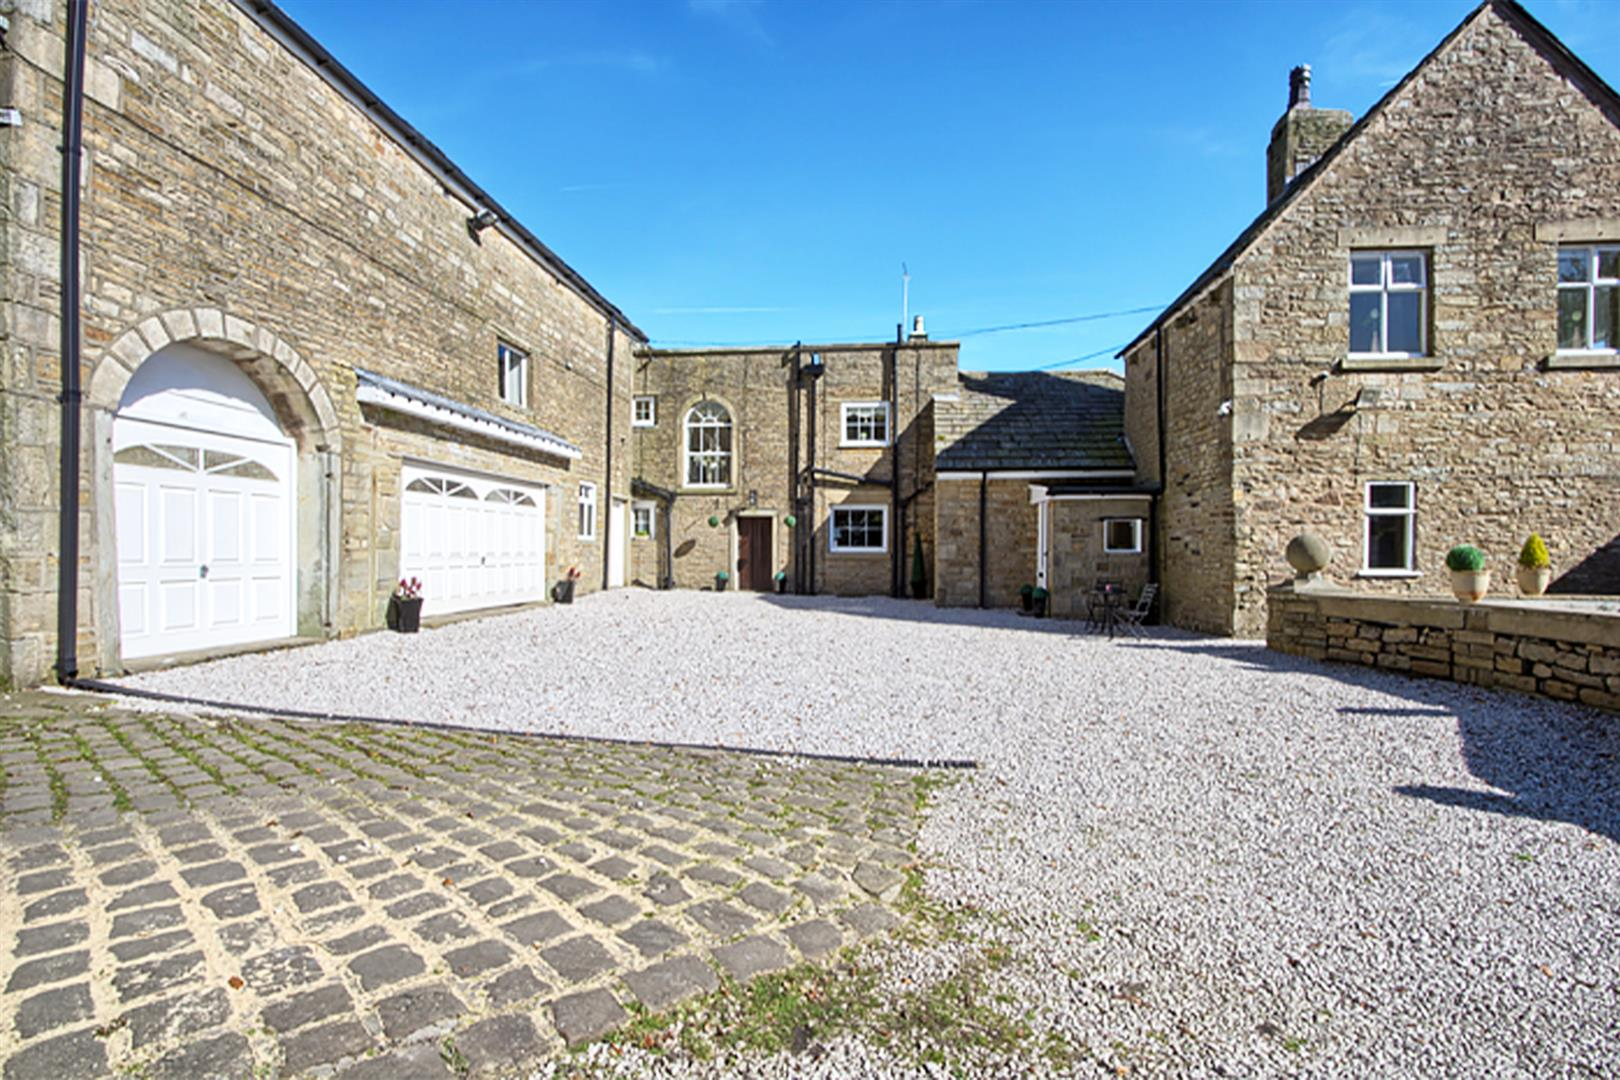 4 bedroom house For Sale in Bolton - courtyard.png.